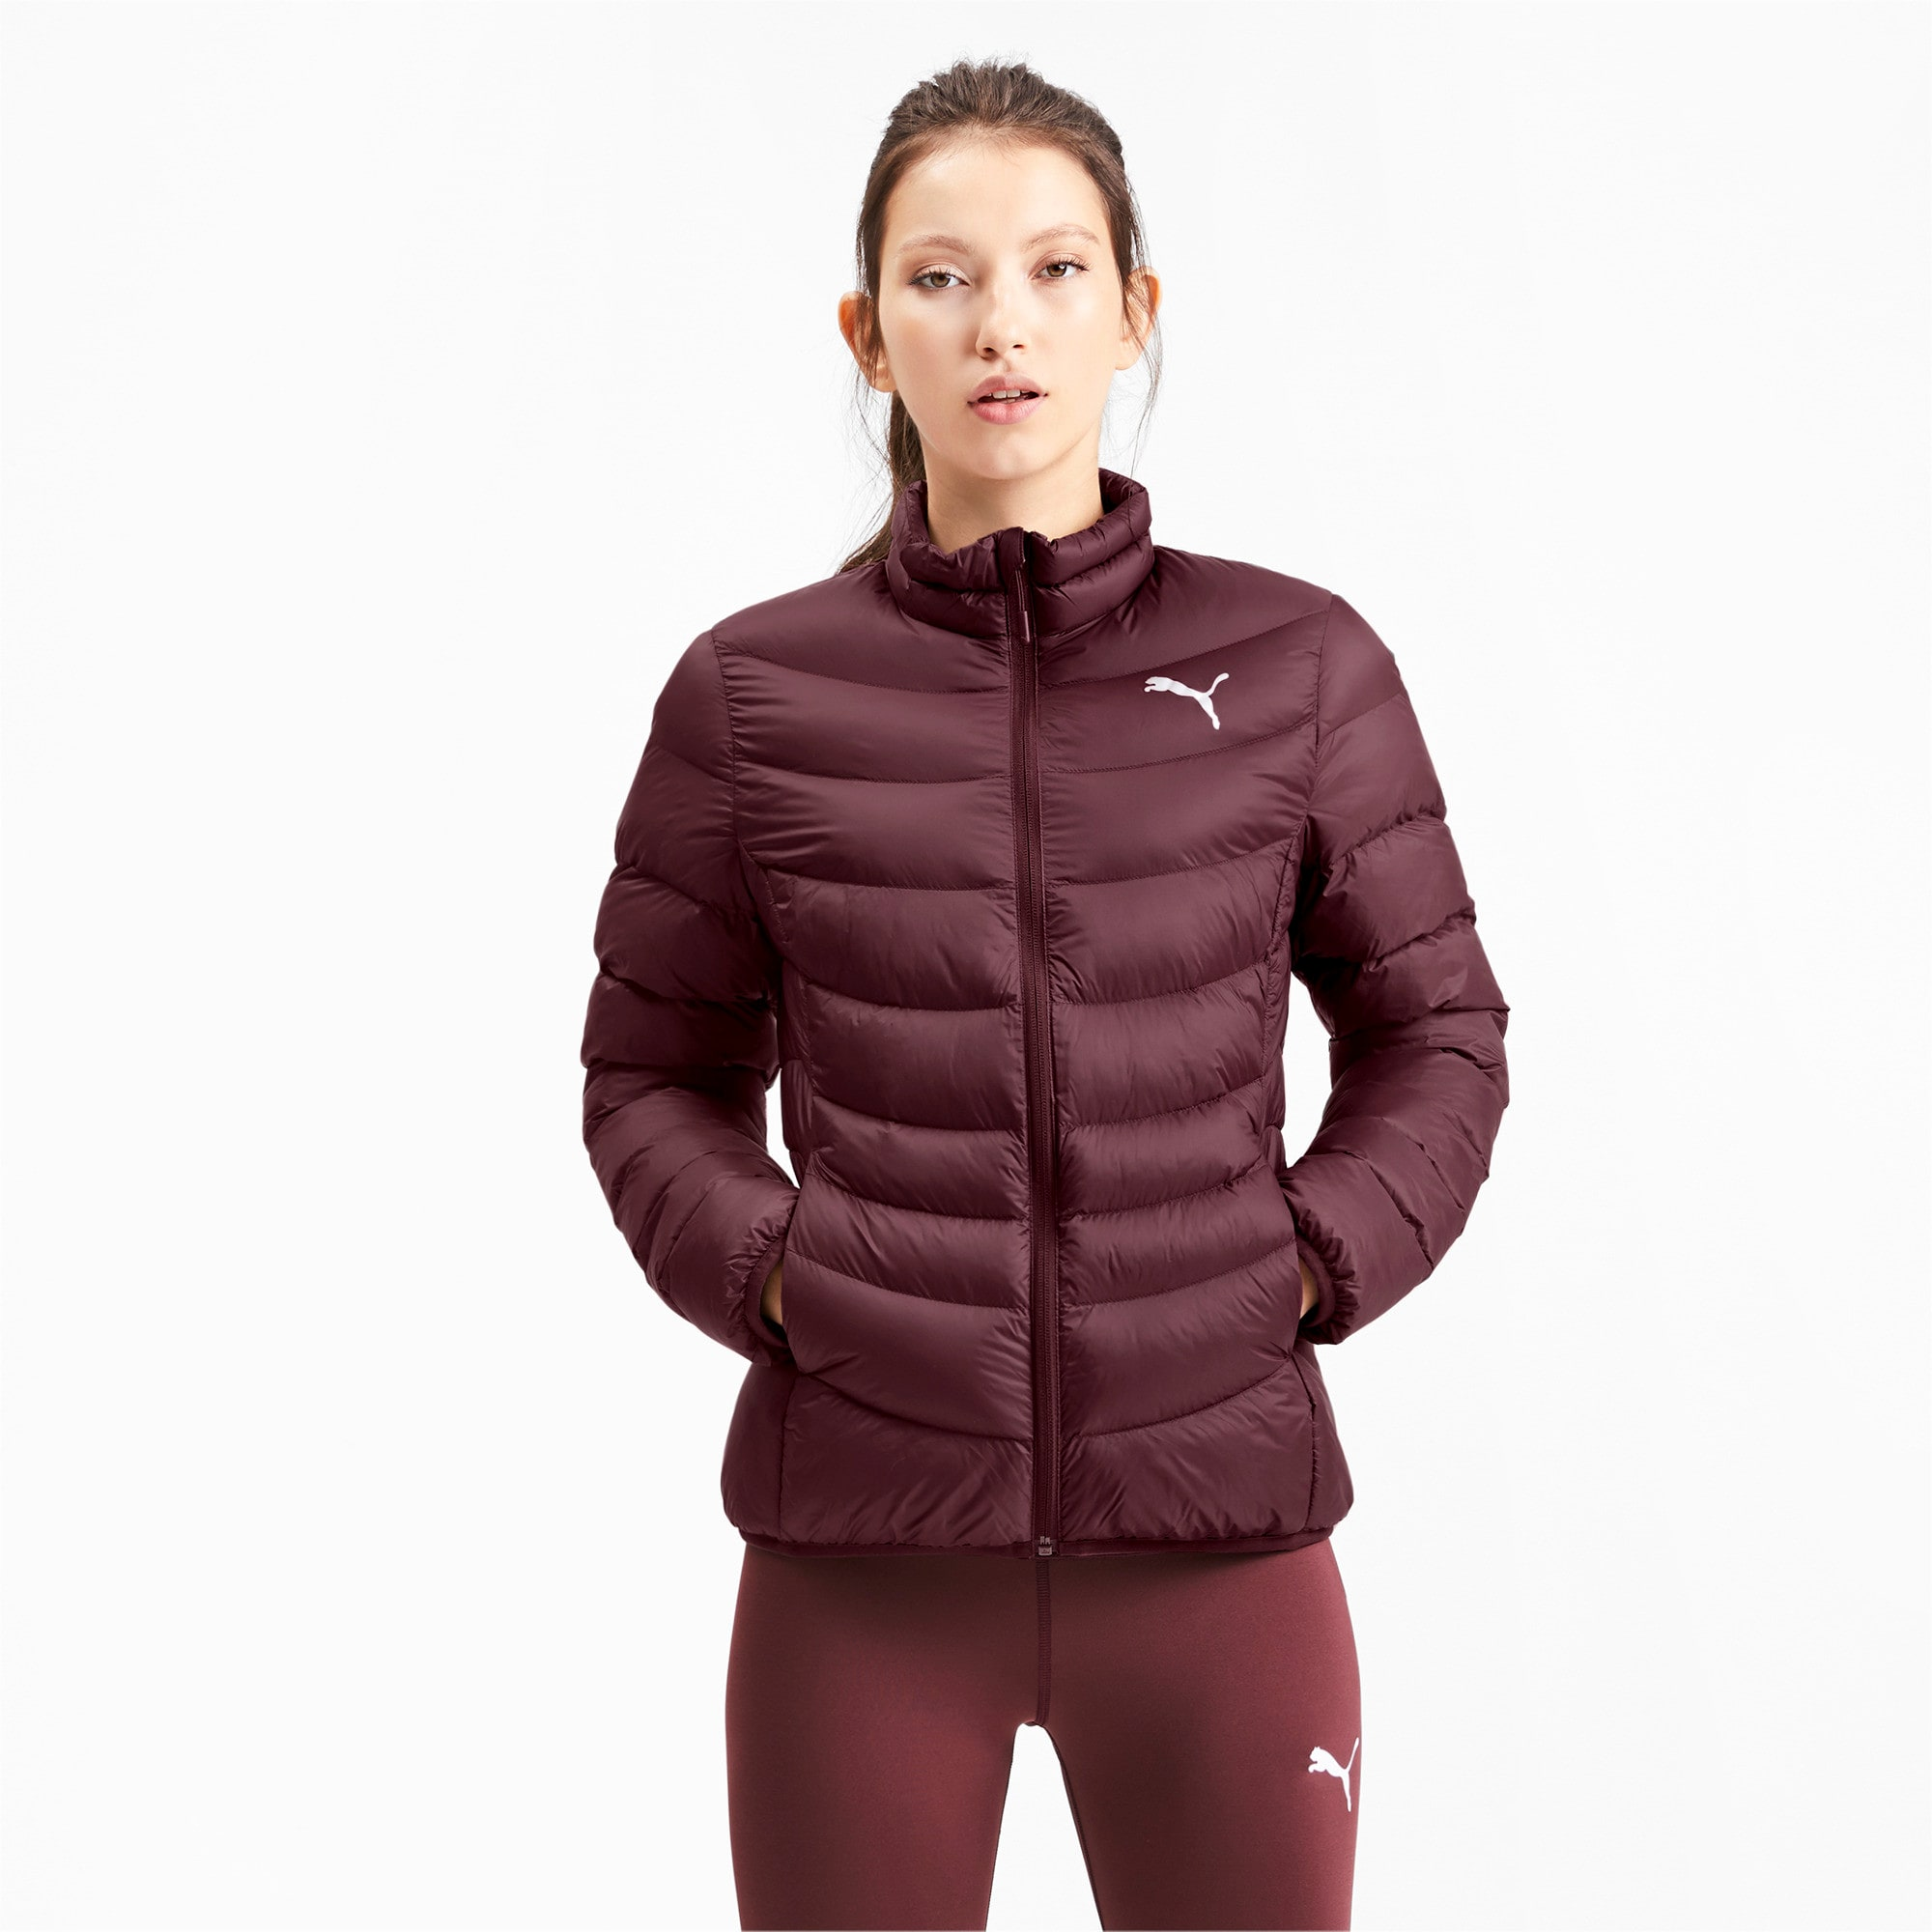 Thumbnail 1 of Ultralight warmCELL Damen Jacke, Vineyard Wine, medium